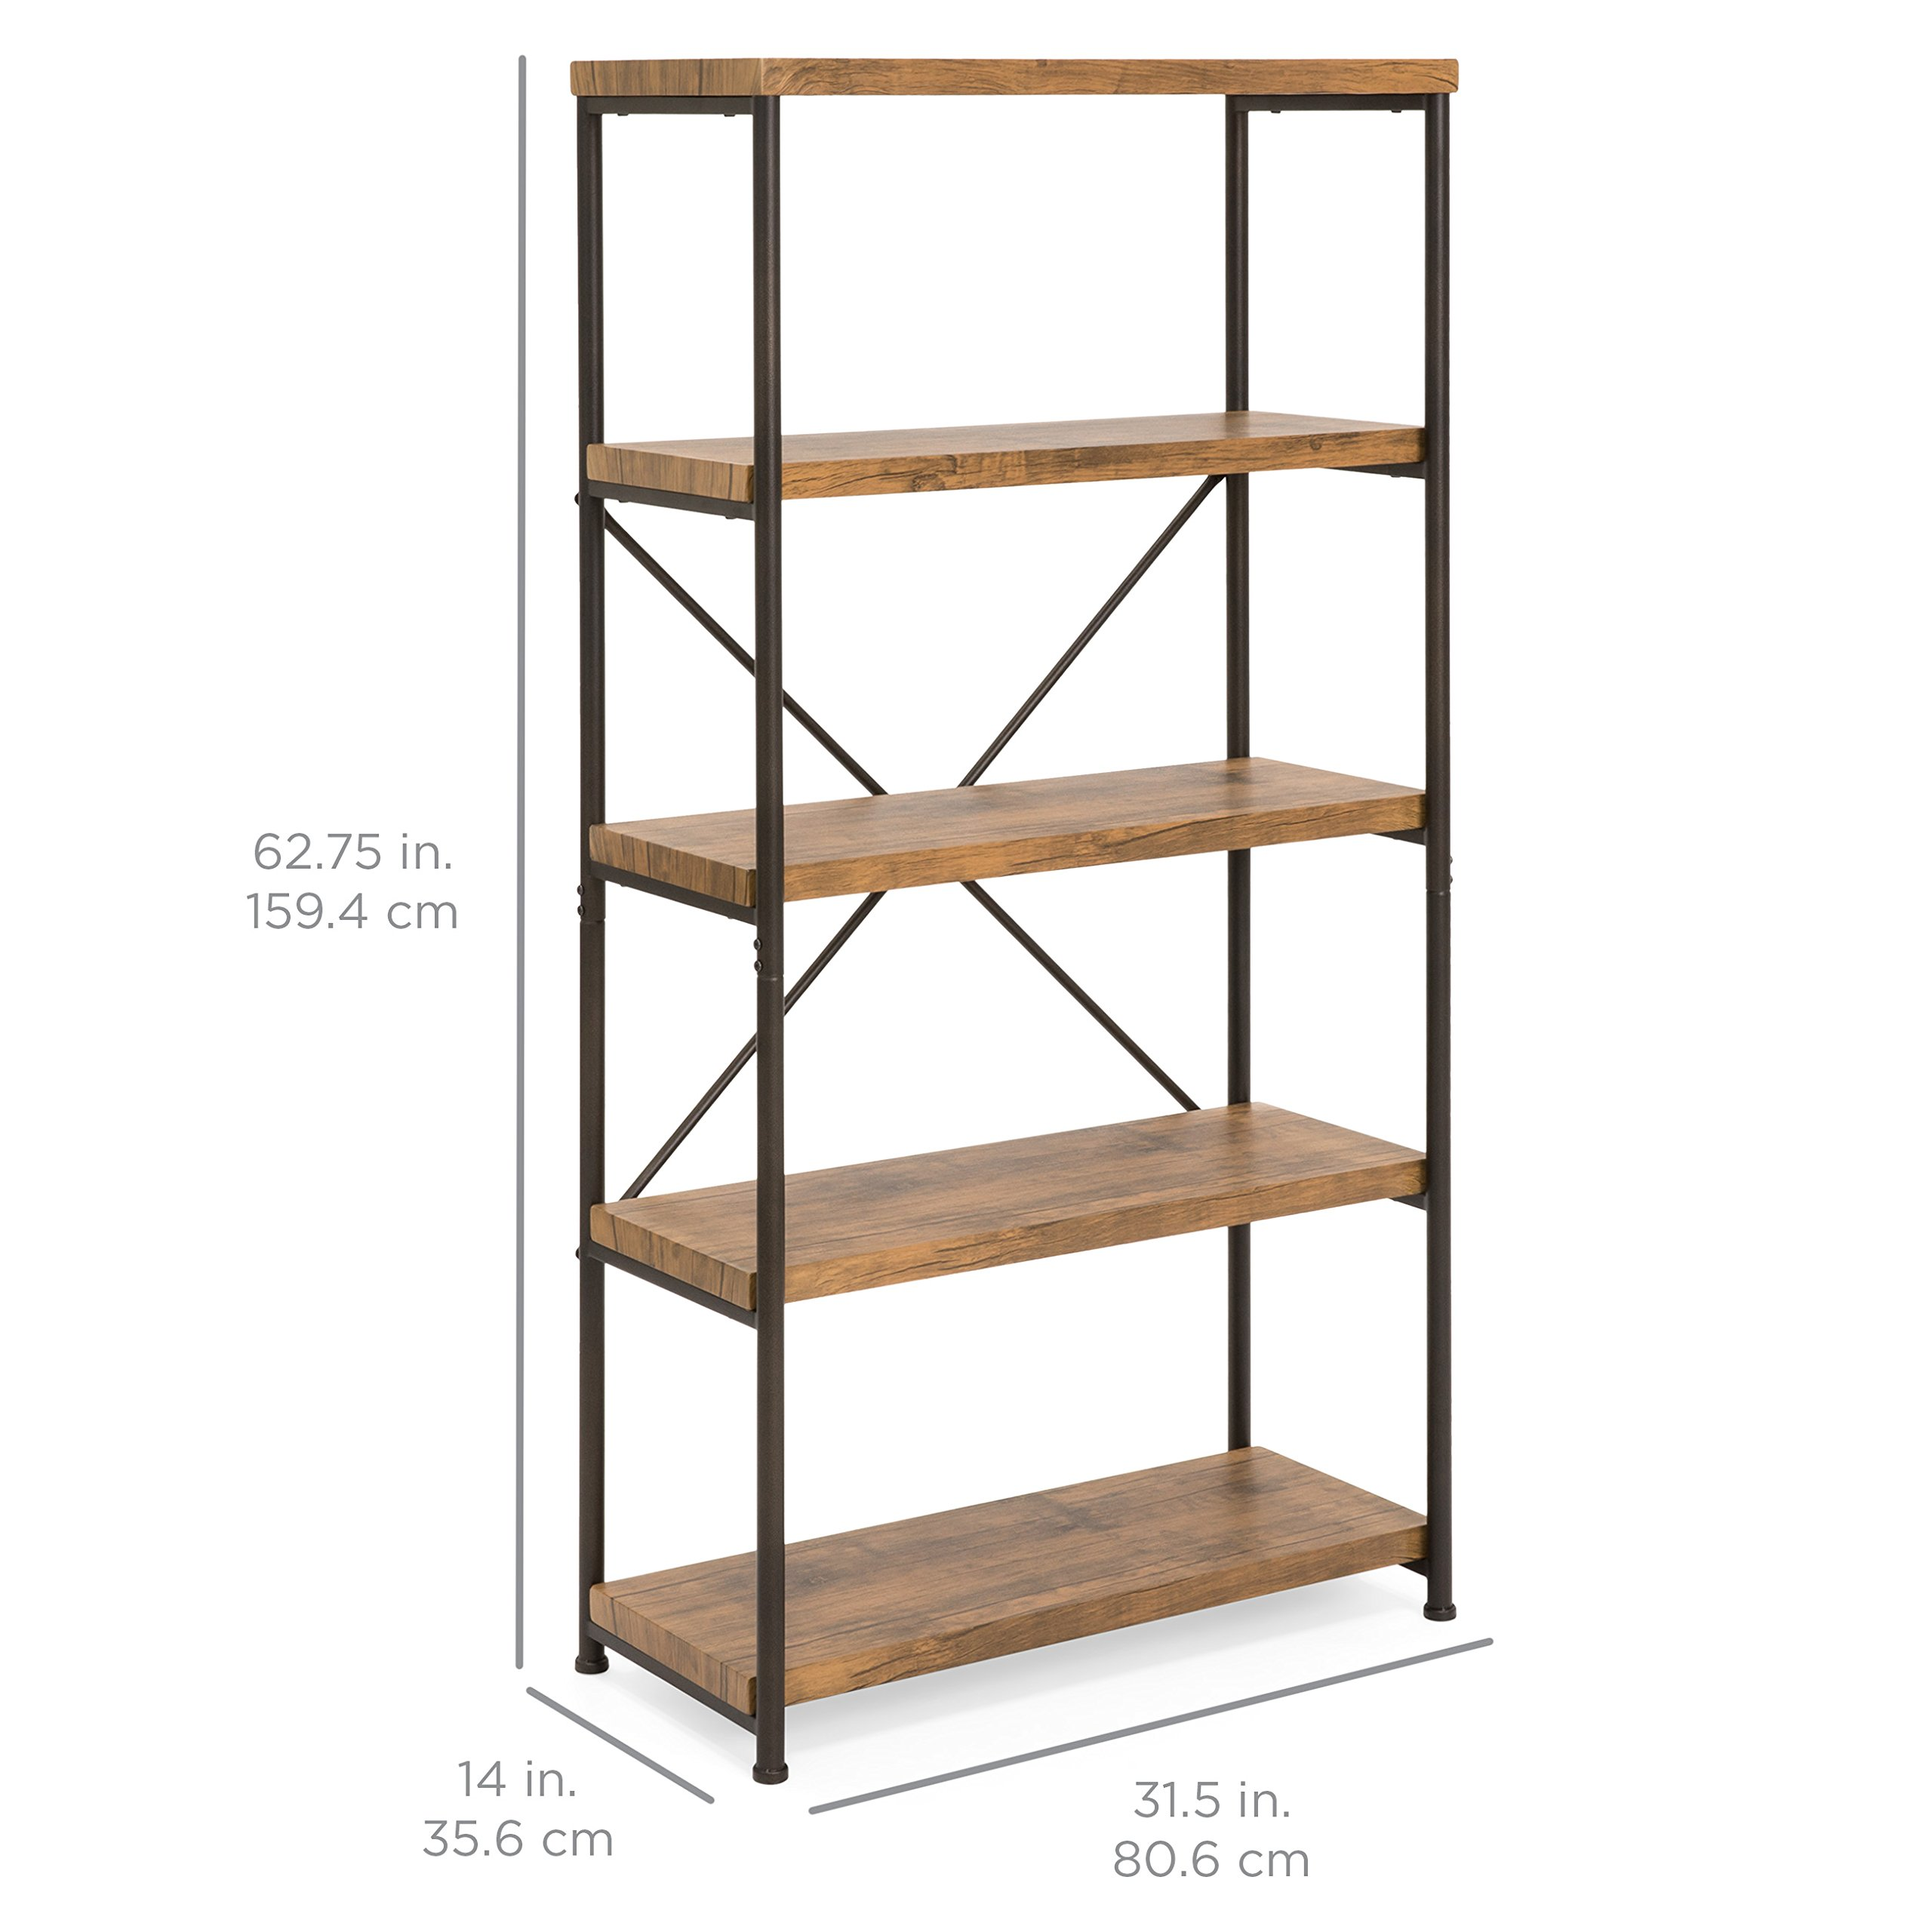 Best Choice Products 4-Tier Rustic Industrial Bookshelf Display Decor Accent w/Metal Frame, Wood Shelves - Brown by Best Choice Products (Image #7)